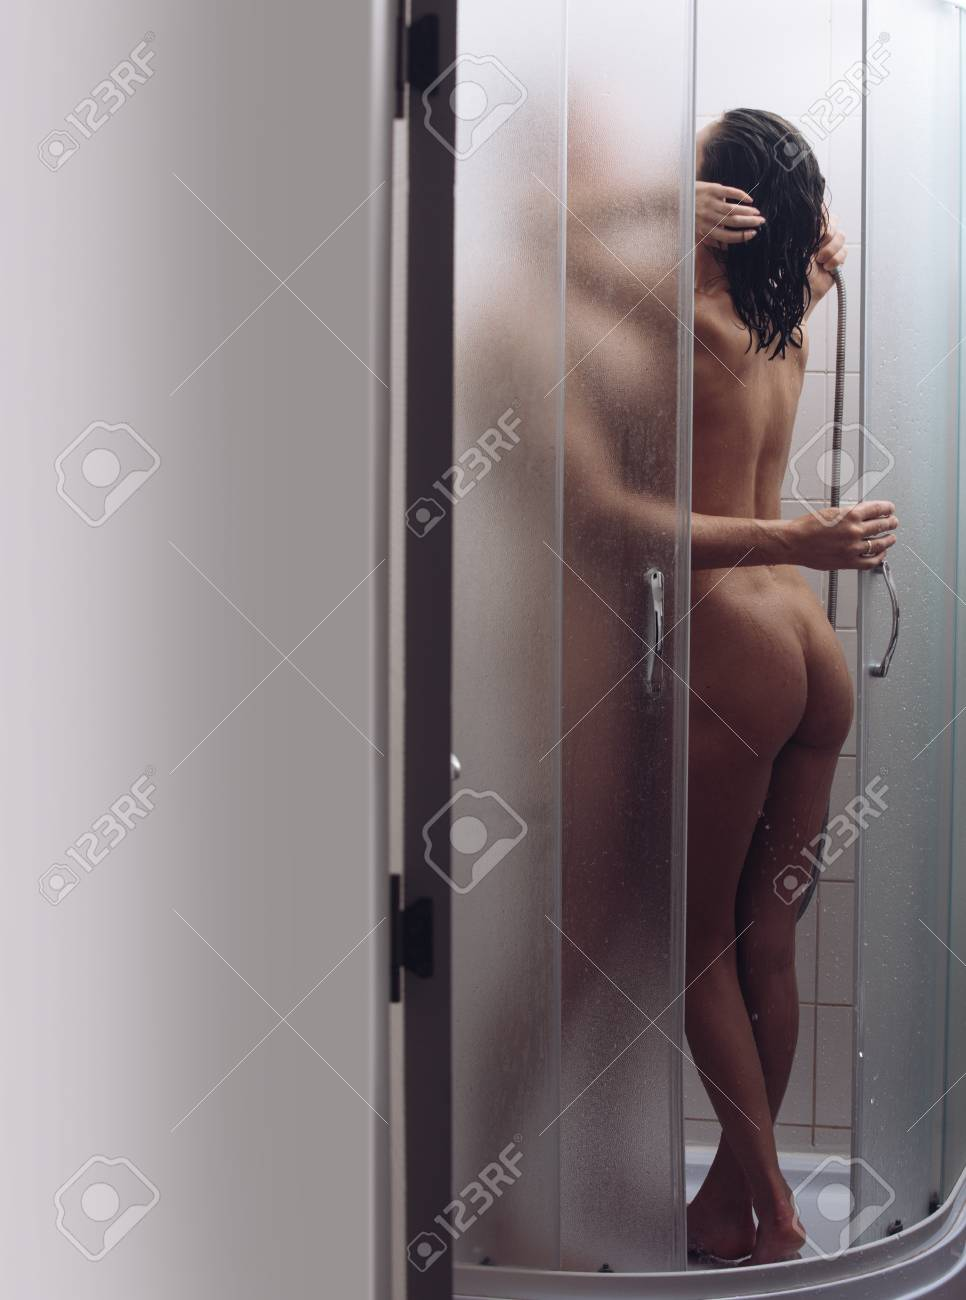 Spa shower girl nude